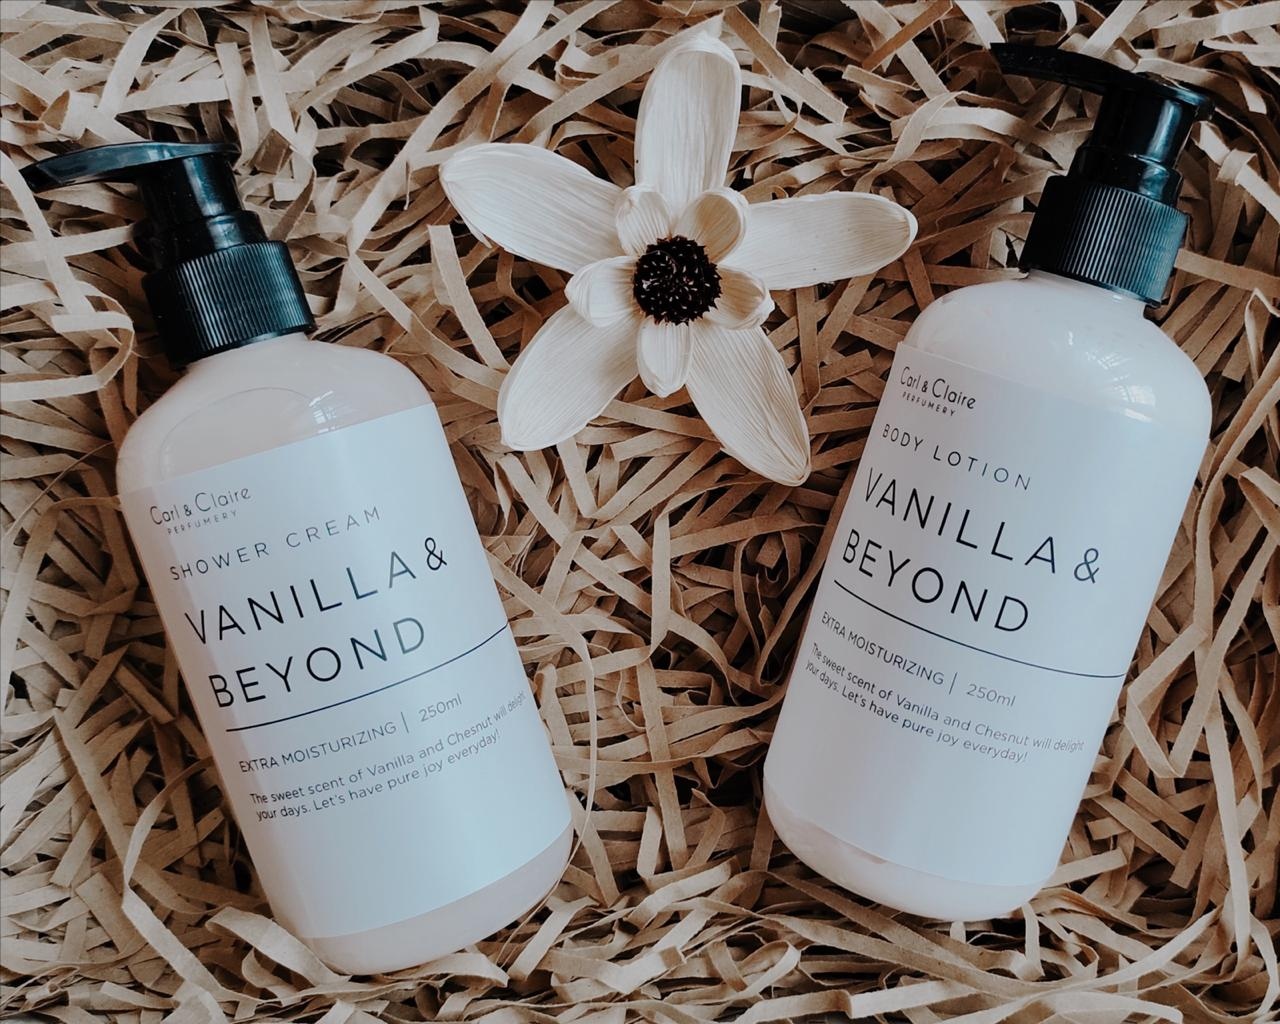 Review: Carl & Claire Vanilla and Beyond